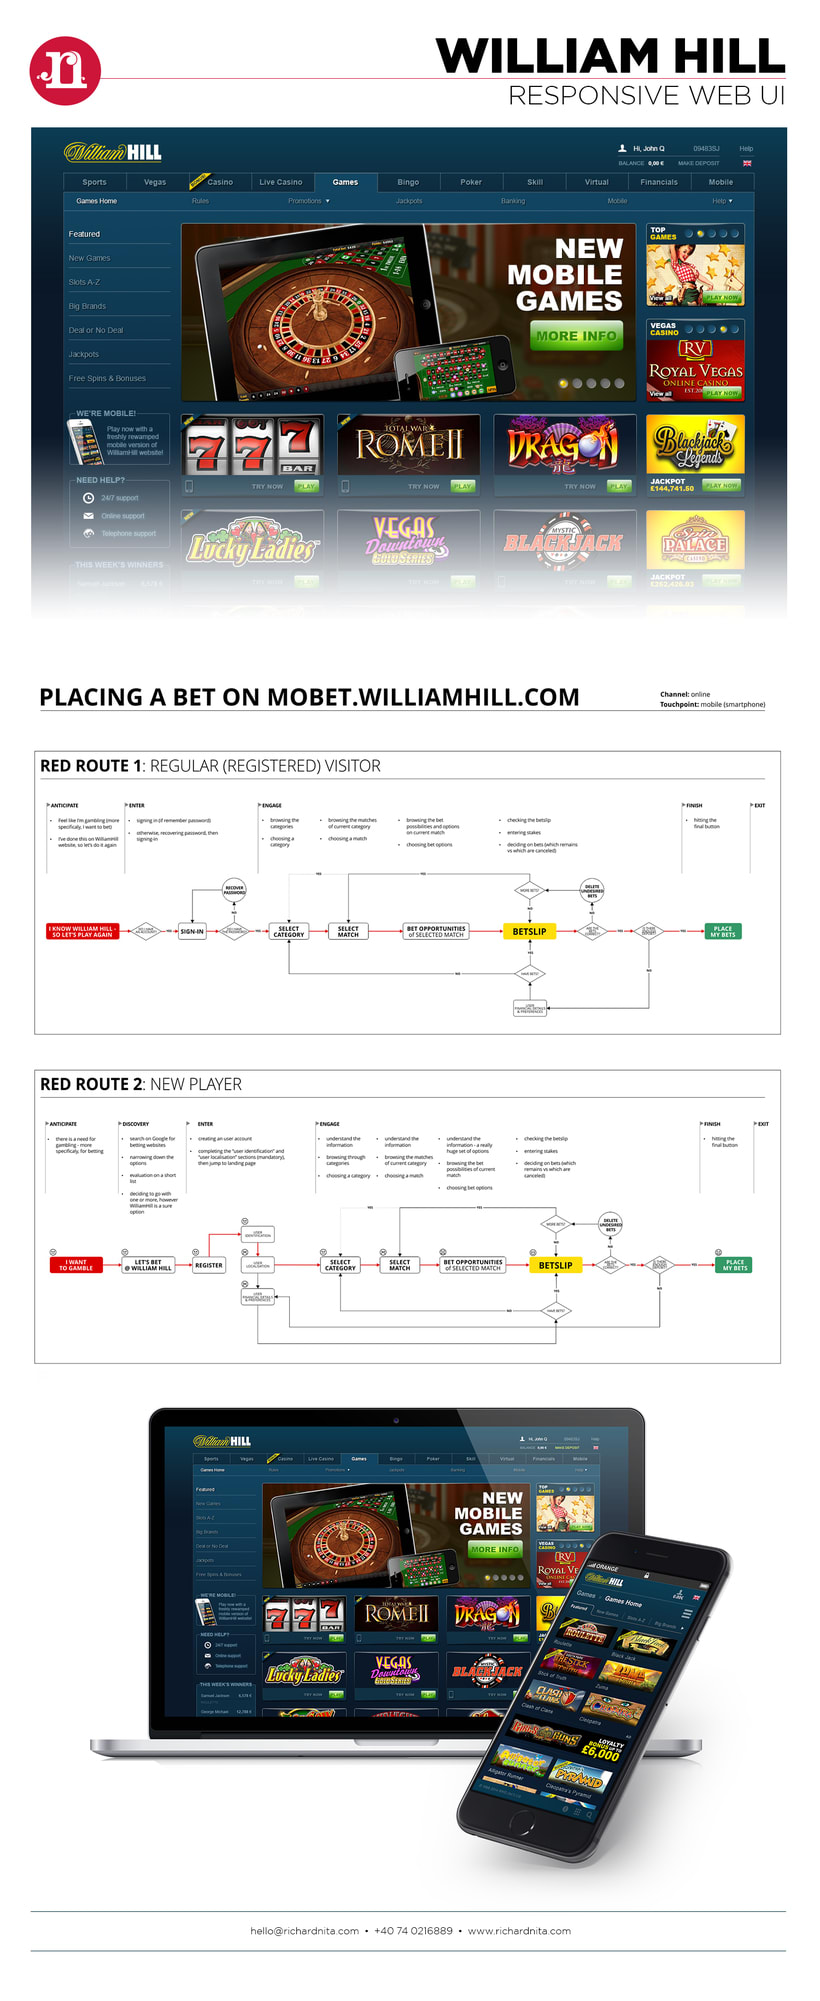 William Hill - red routes, analysis and improvement proposals -1